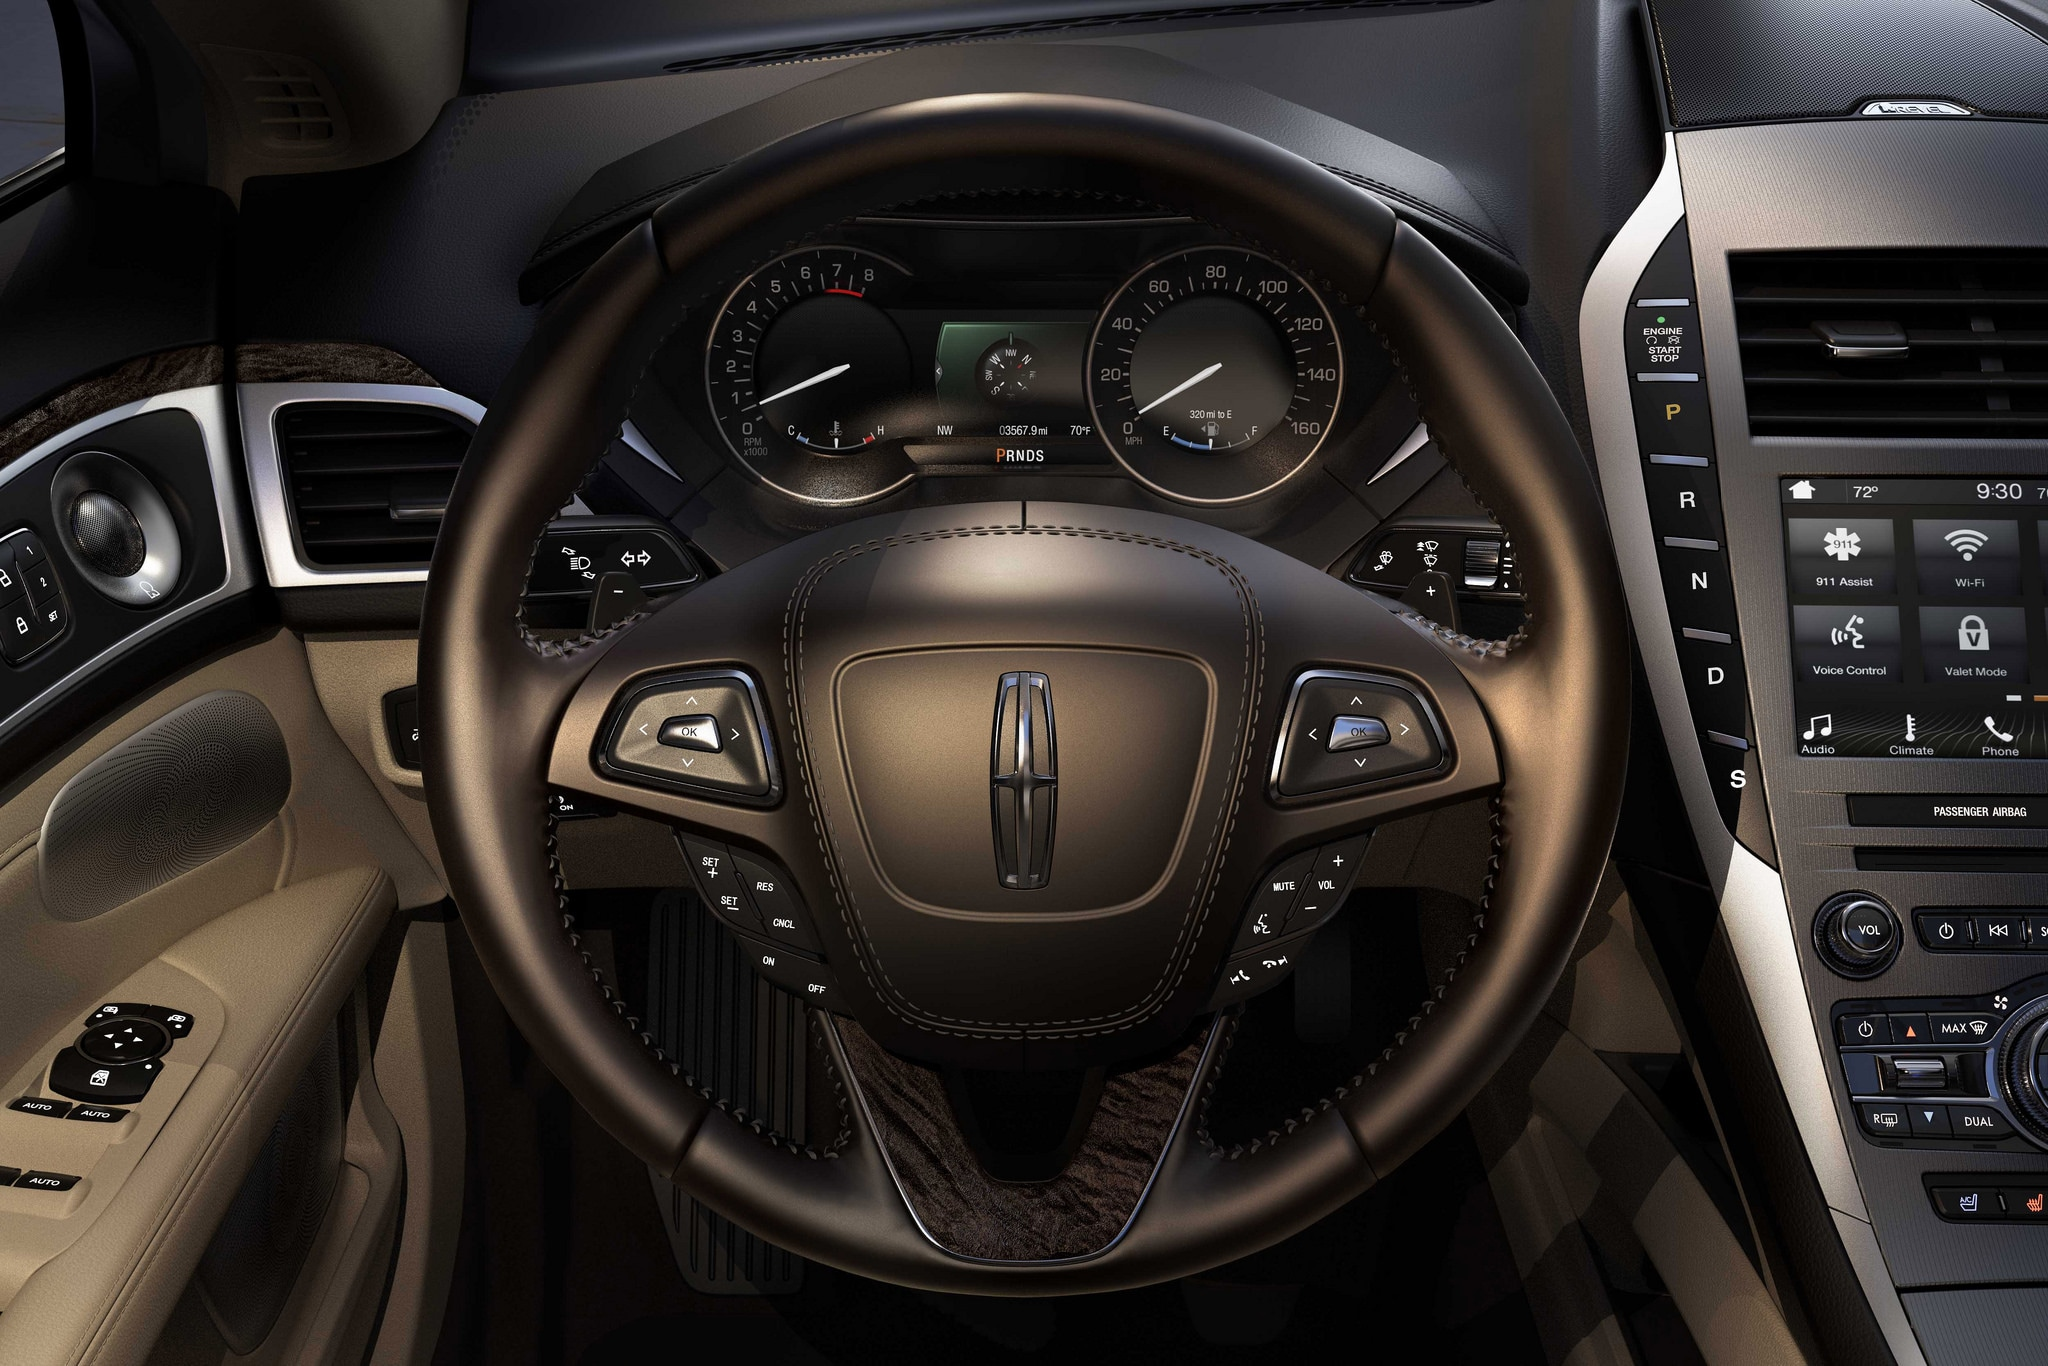 2017 Lincoln MKZ Dashboard Indicator Lights